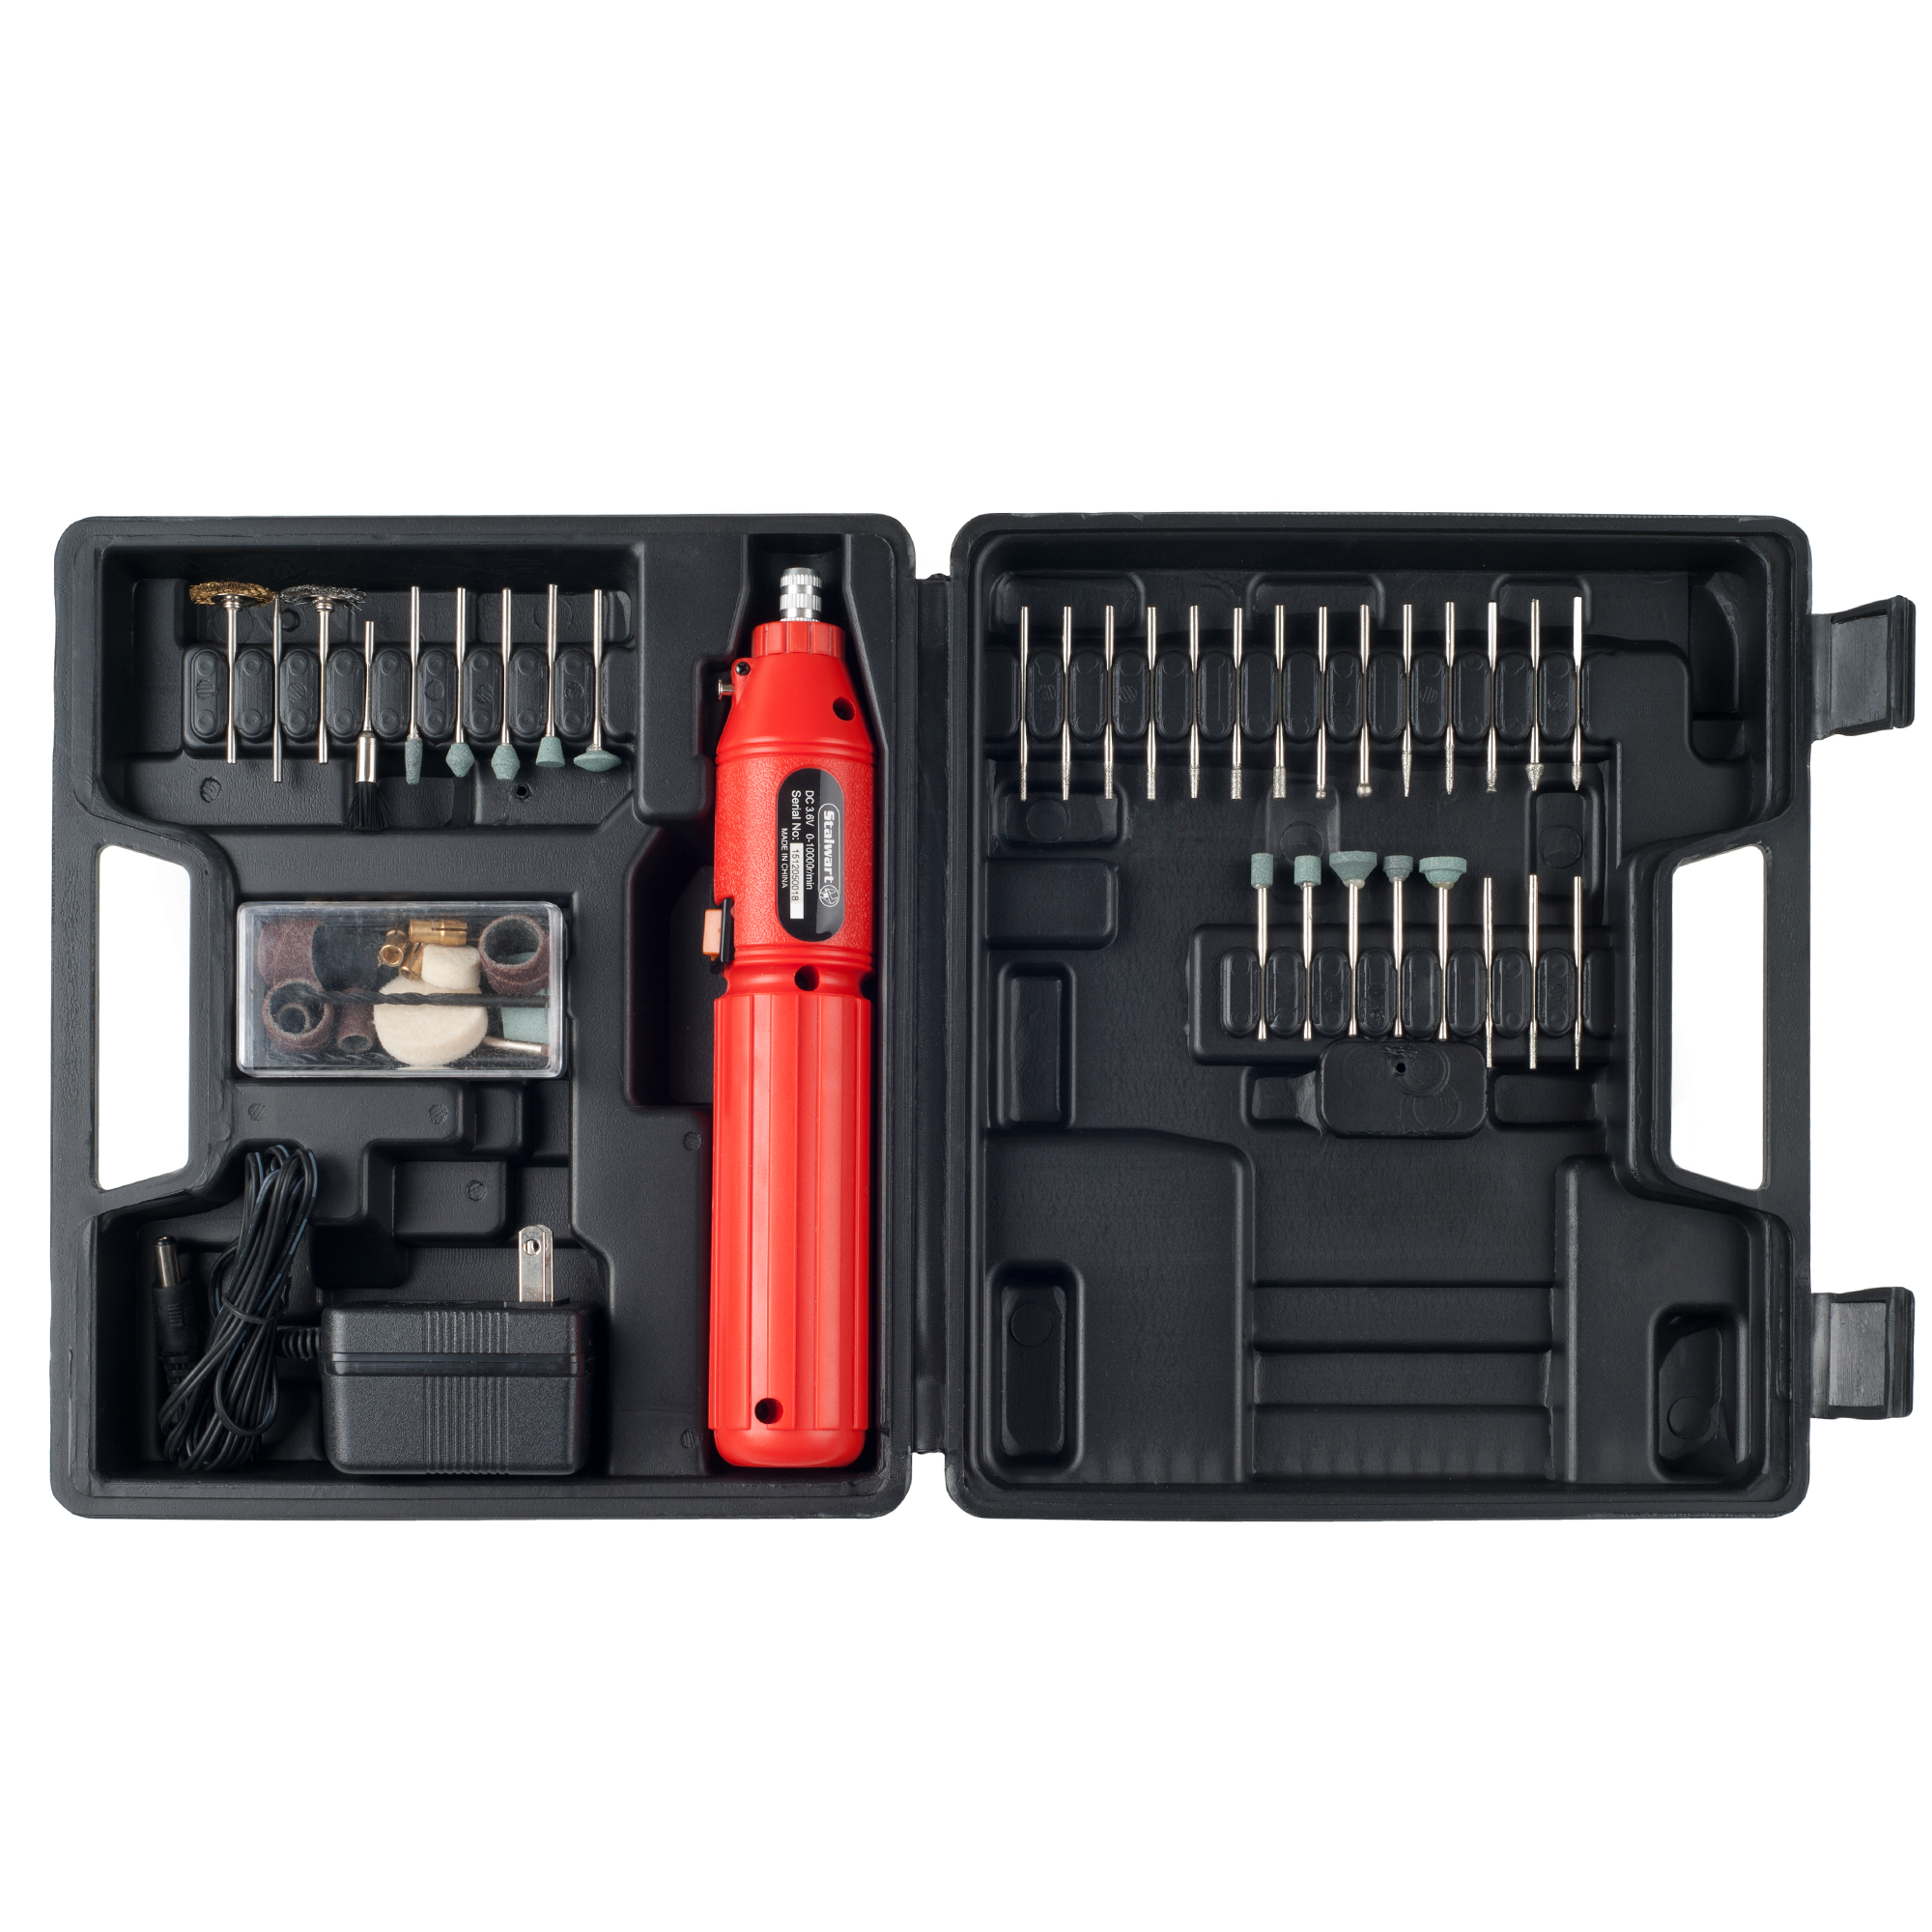 60 pc 3.6V Cordless Rotary Tool Set by Stalwart